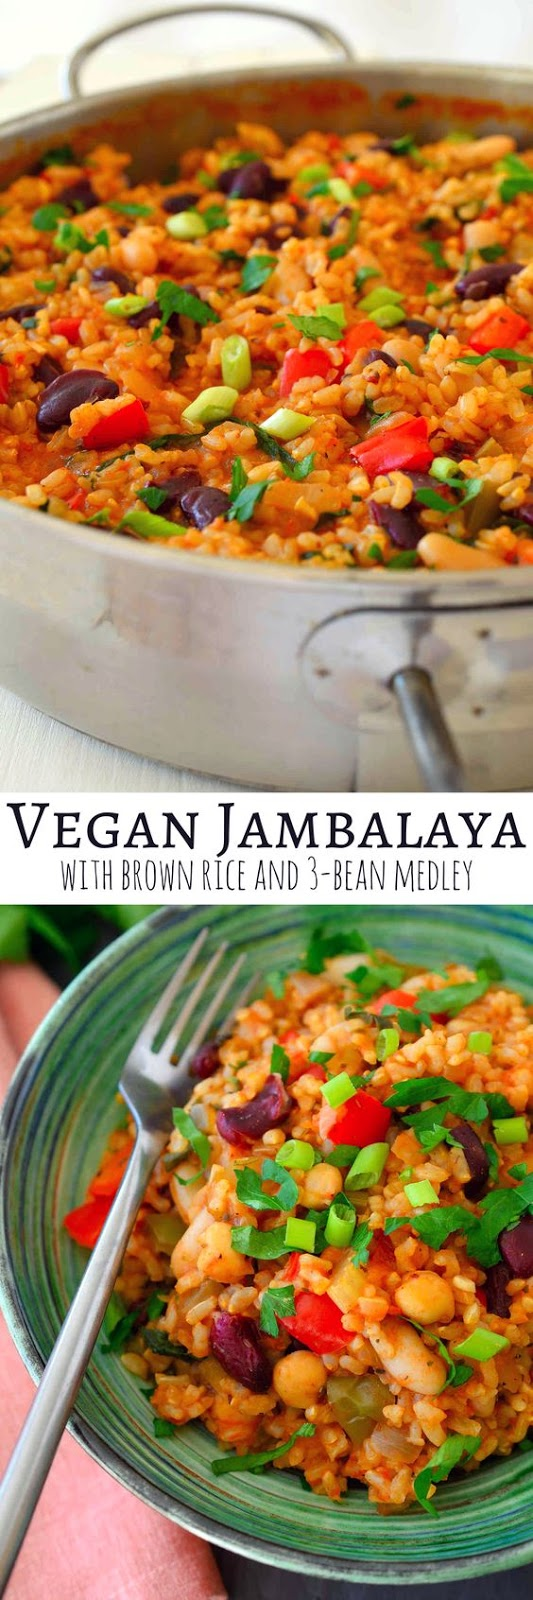 Vegan Jambalaya   #DESSERTS #HEALTHYFOOD #EASYRECIPES #DINNER #LAUCH #DELICIOUS #EASY #HOLIDAYS #RECIPE #SPECIALDIET #WORLDCUISINE #CAKE #APPETIZERS #HEALTHYRECIPES #DRINKS #COOKINGMETHOD #ITALIANRECIPES #MEAT #VEGANRECIPES #COOKIES #PASTA #FRUIT #SALAD #SOUPAPPETIZERS #NONALCOHOLICDRINKS #MEALPLANNING #VEGETABLES #SOUP #PASTRY #CHOCOLATE #DAIRY #ALCOHOLICDRINKS #BULGURSALAD #BAKING #SNACKS #BEEFRECIPES #MEATAPPETIZERS #MEXICANRECIPES #BREAD #ASIANRECIPES #SEAFOODAPPETIZERS #MUFFINS #BREAKFASTANDBRUNCH #CONDIMENTS #CUPCAKES #CHEESE #CHICKENRECIPES #PIE #COFFEE #NOBAKEDESSERTS #HEALTHYSNACKS #SEAFOOD #GRAIN #LUNCHESDINNERS #MEXICAN #QUICKBREAD #LIQUOR